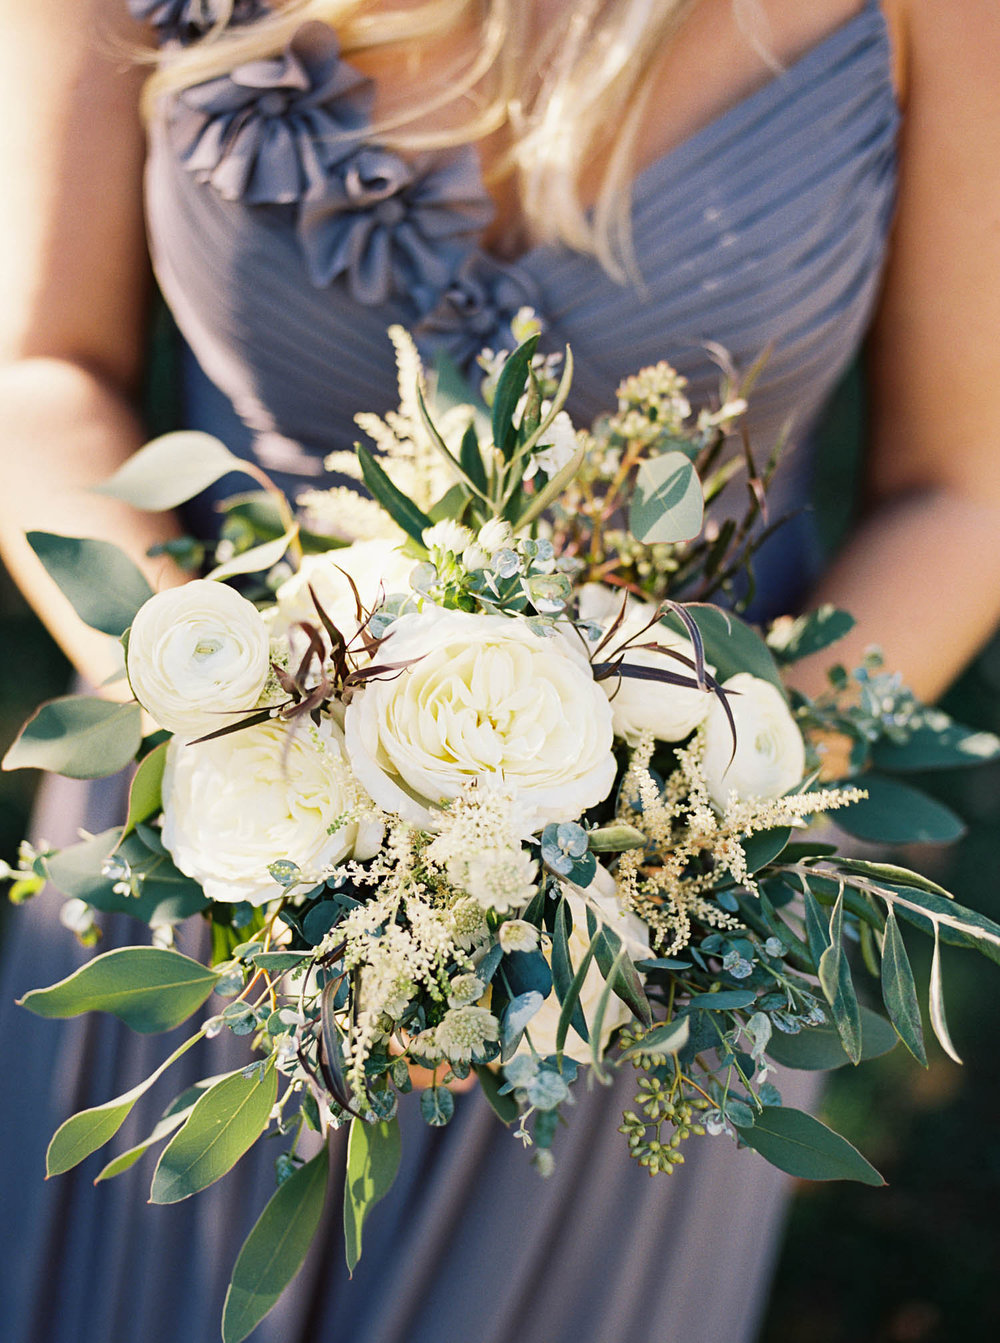 All white and greenery bridesmaid bouquet // Lush floral design